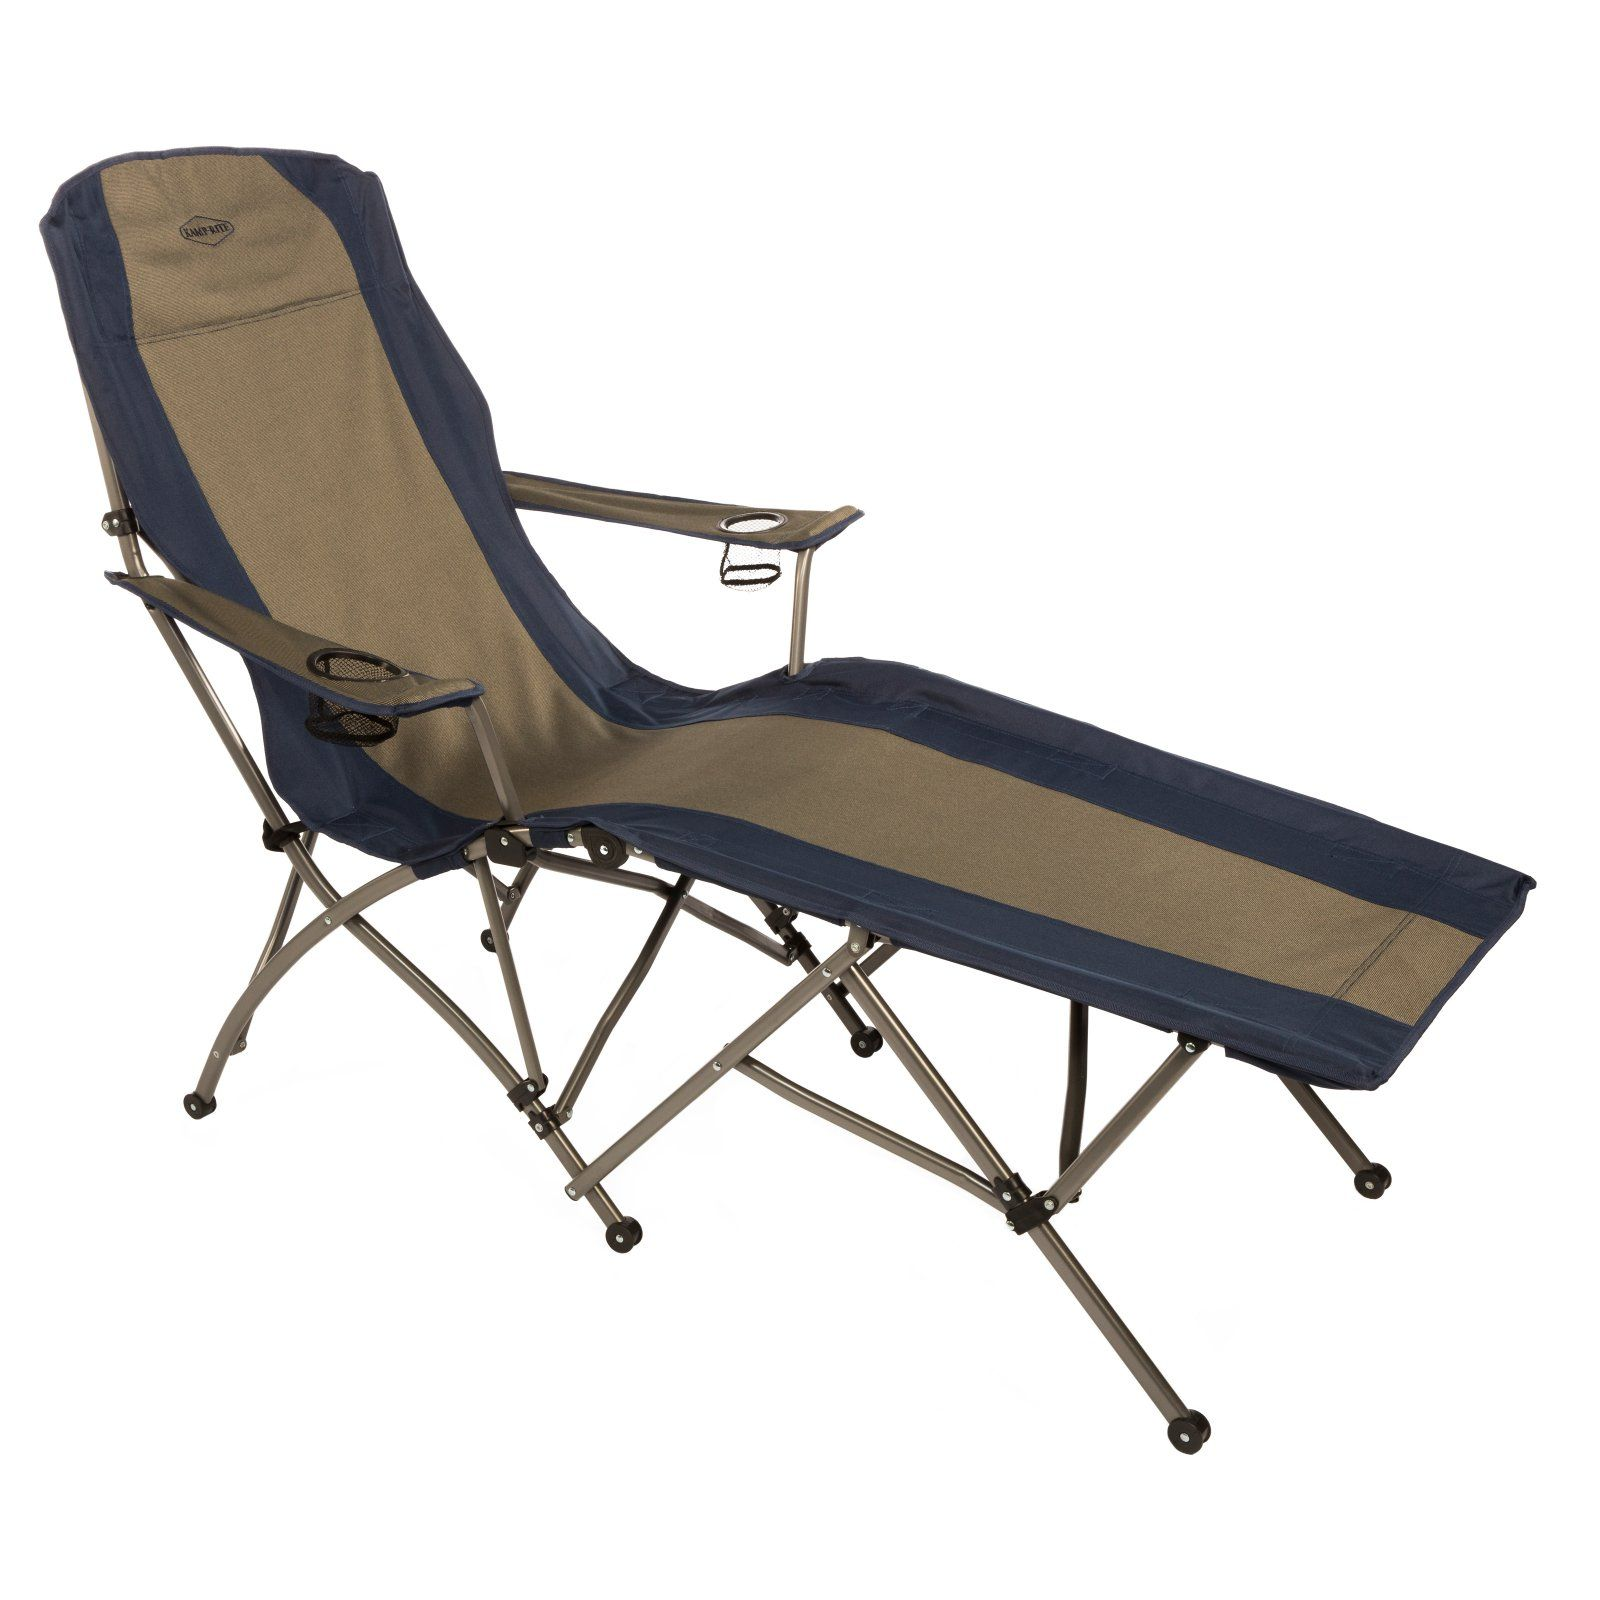 Astounding Outdoor Kamp Rite Soft Arm Folding Chaise Lounge Chair In Unemploymentrelief Wooden Chair Designs For Living Room Unemploymentrelieforg